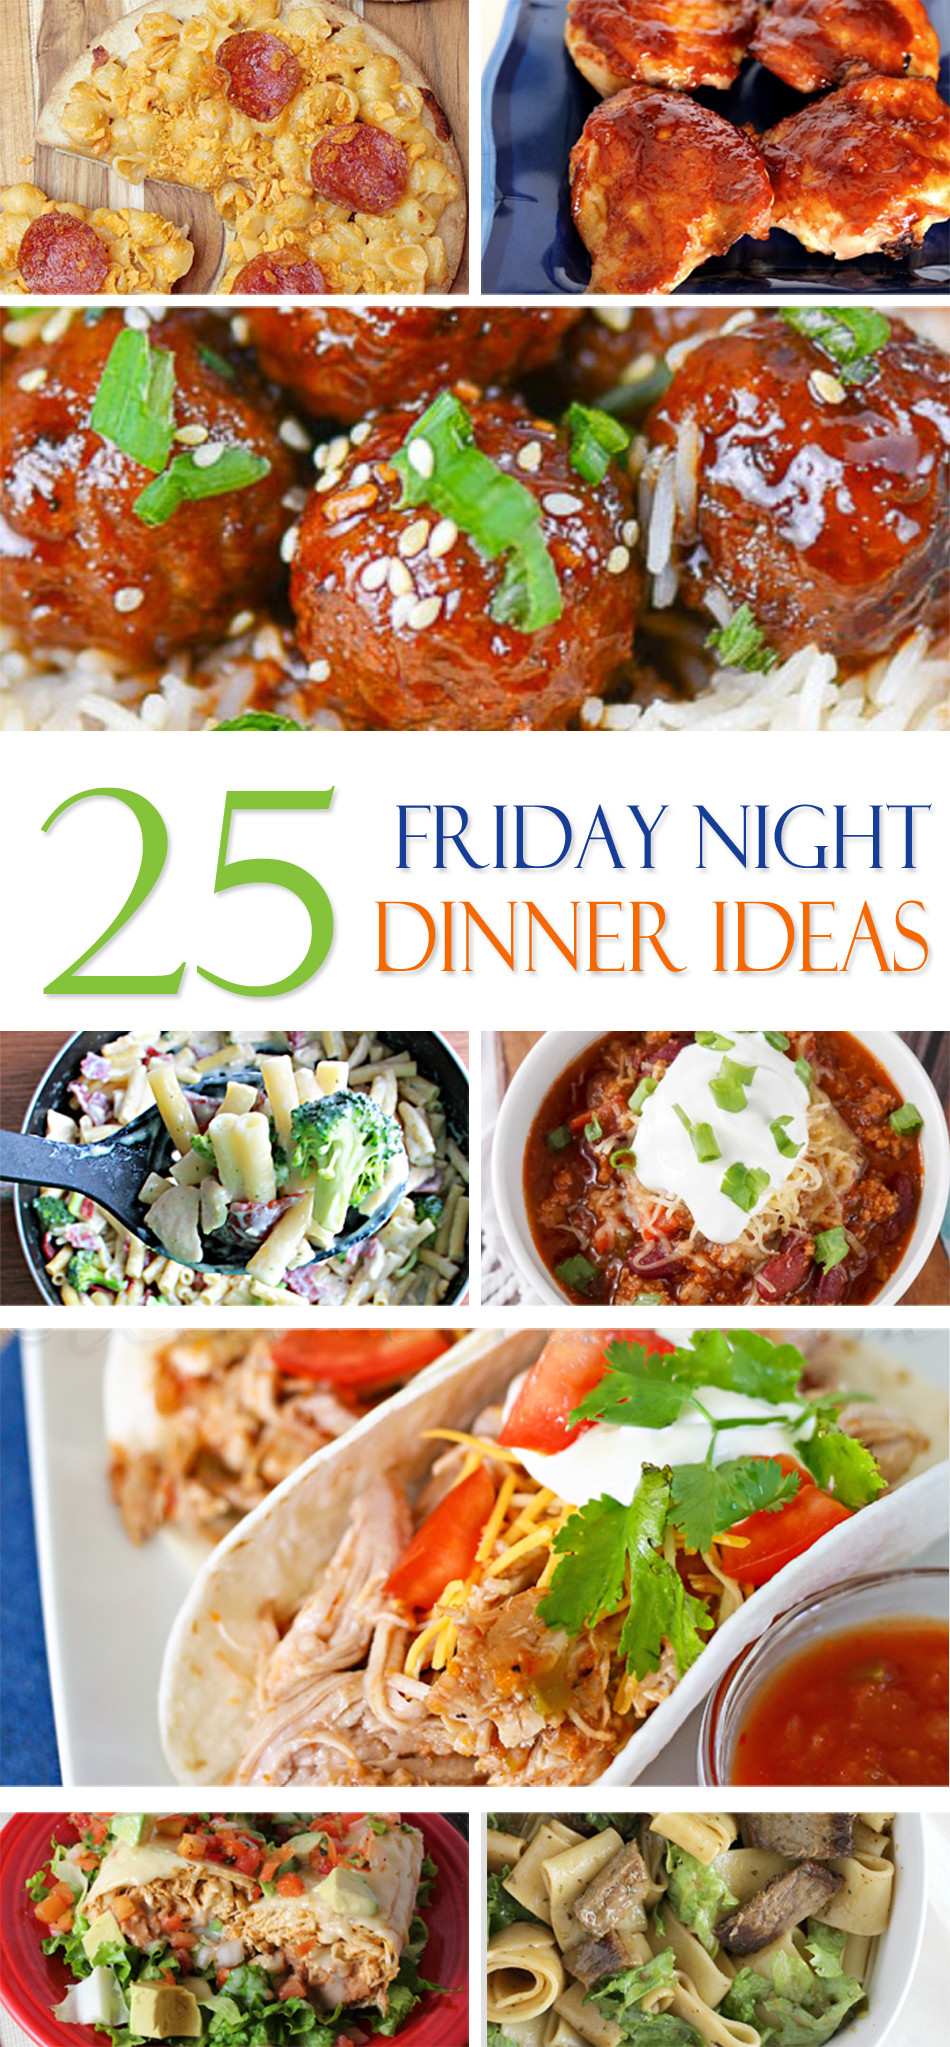 Easy Friday Night Dinner  25 Friday Night Dinner Ideas Page 2 of 2 Kleinworth & Co